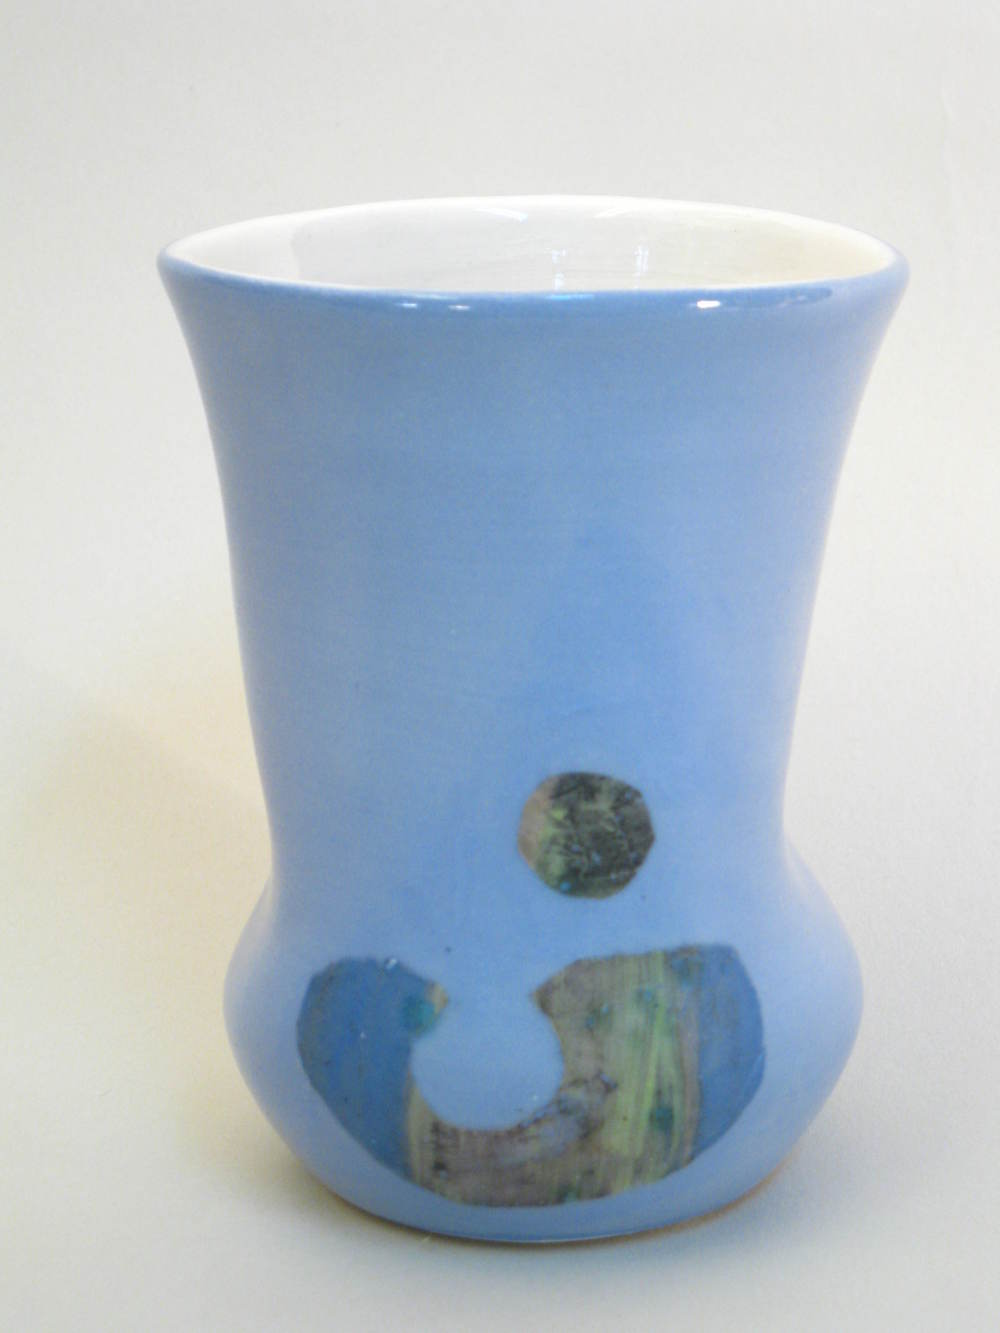 Cup (or Vase) 13X8 cm